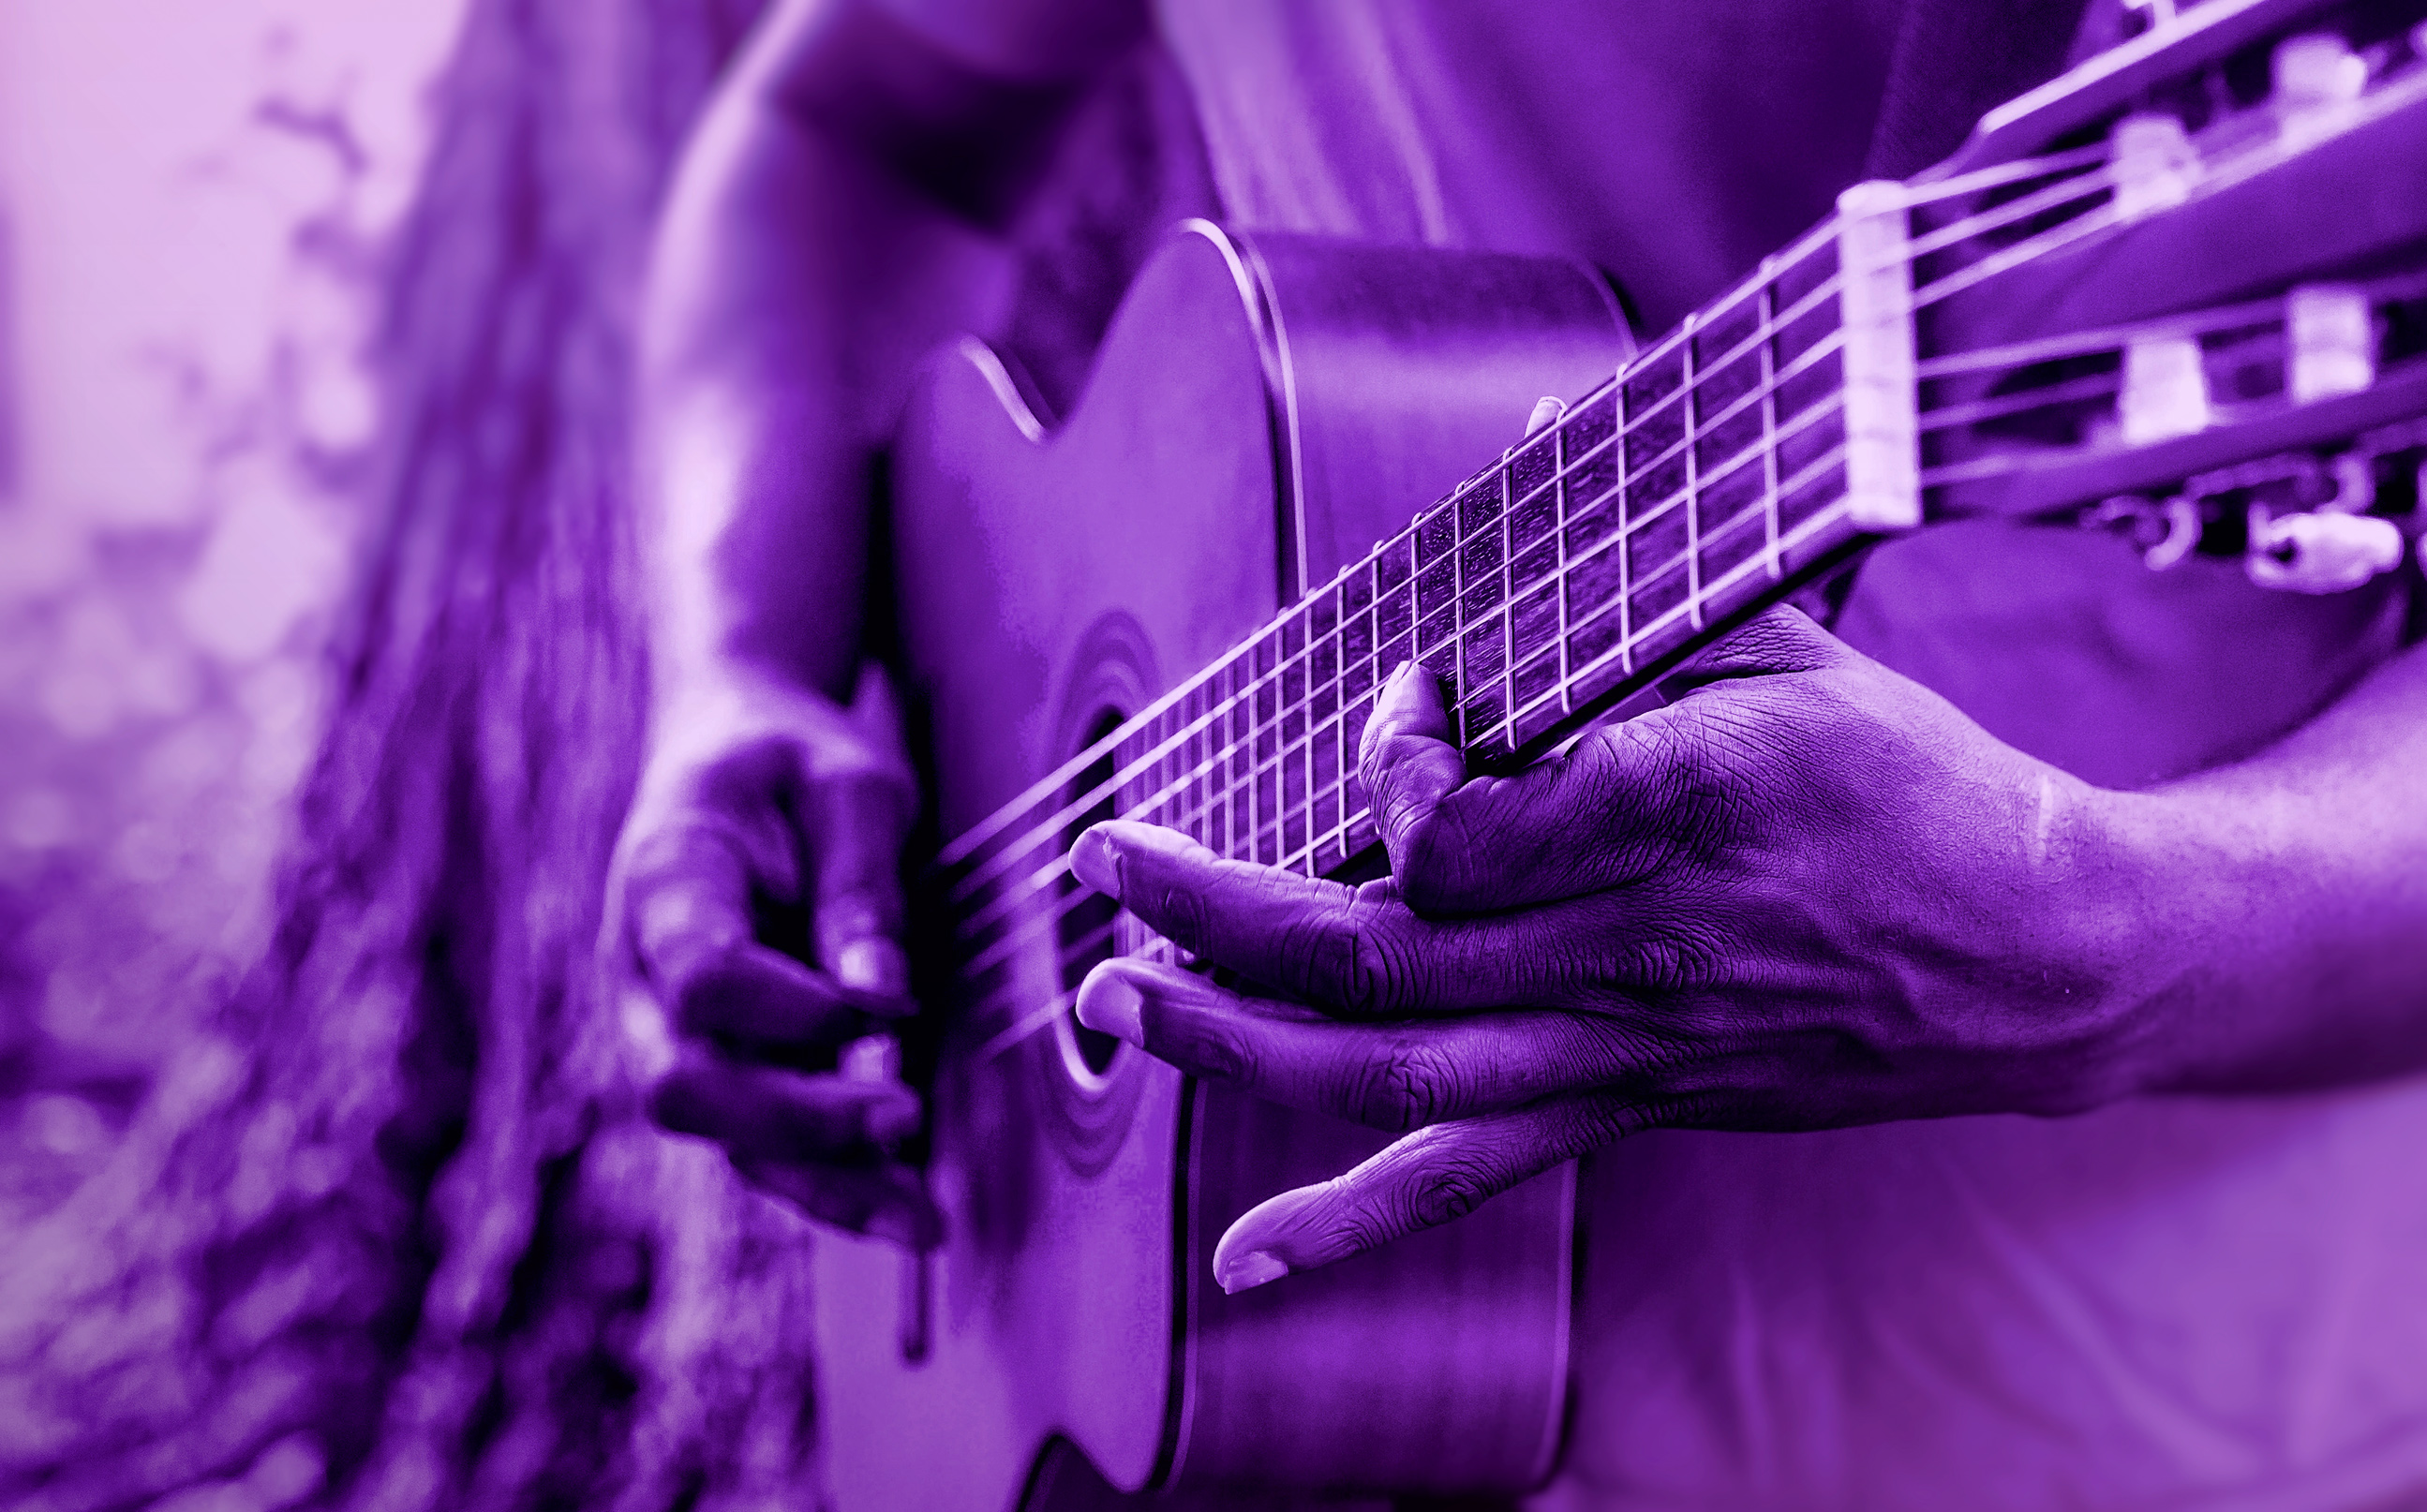 Man Playing Acoustic Guitar, Acoustic, Photography, Lifestyles, Man, HQ Photo